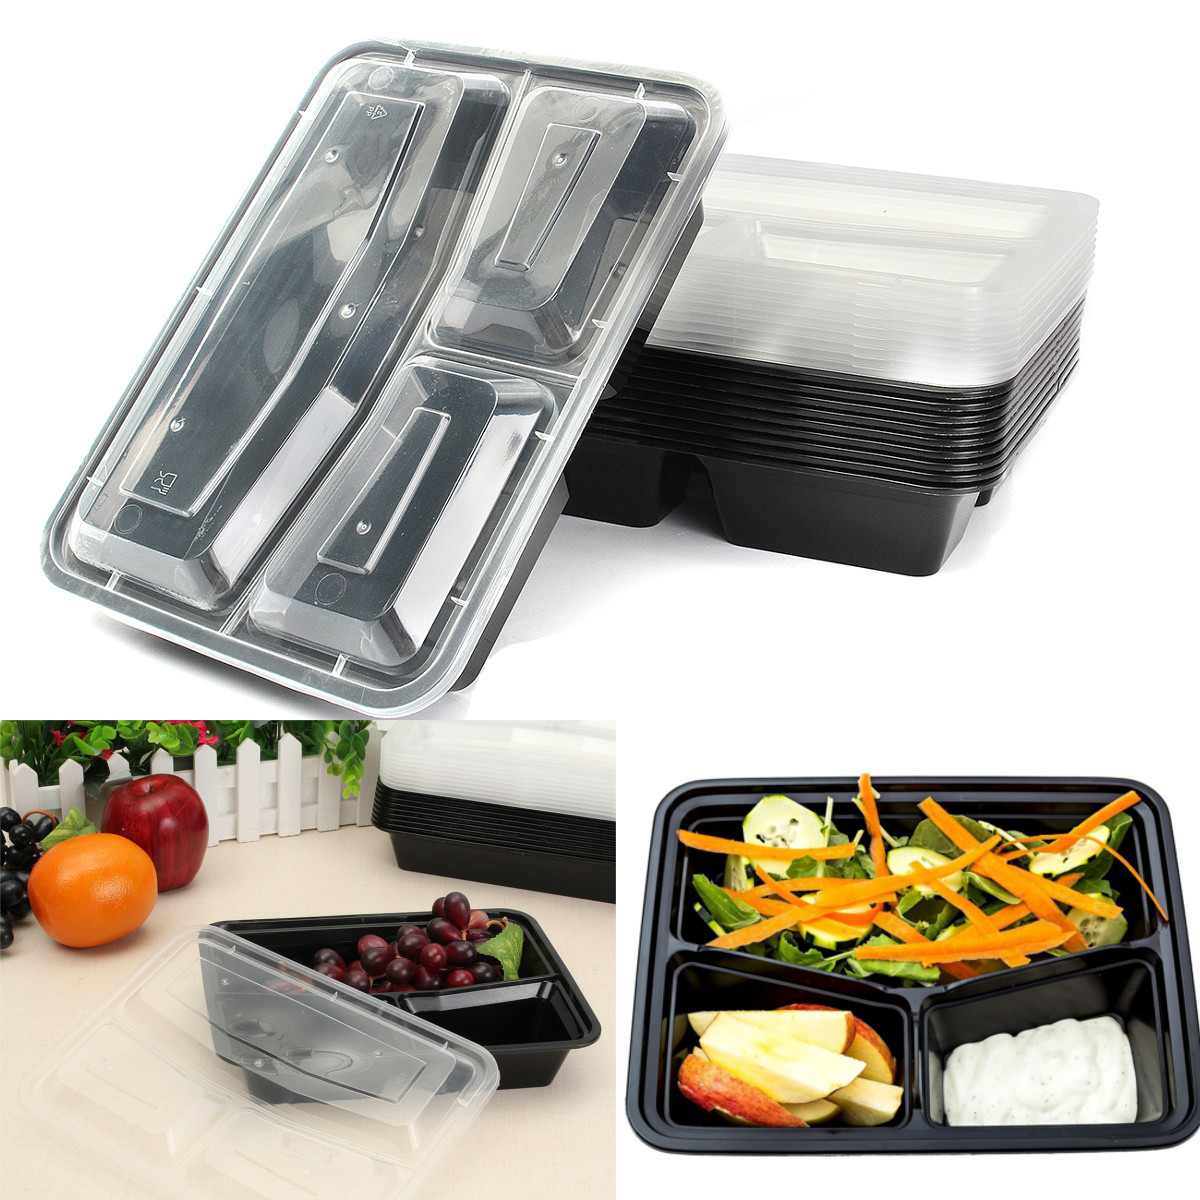 10Pcs Meal Prep Containers Plastic Food Storage Microwavable Reusable 3 Compartment Lunch Box